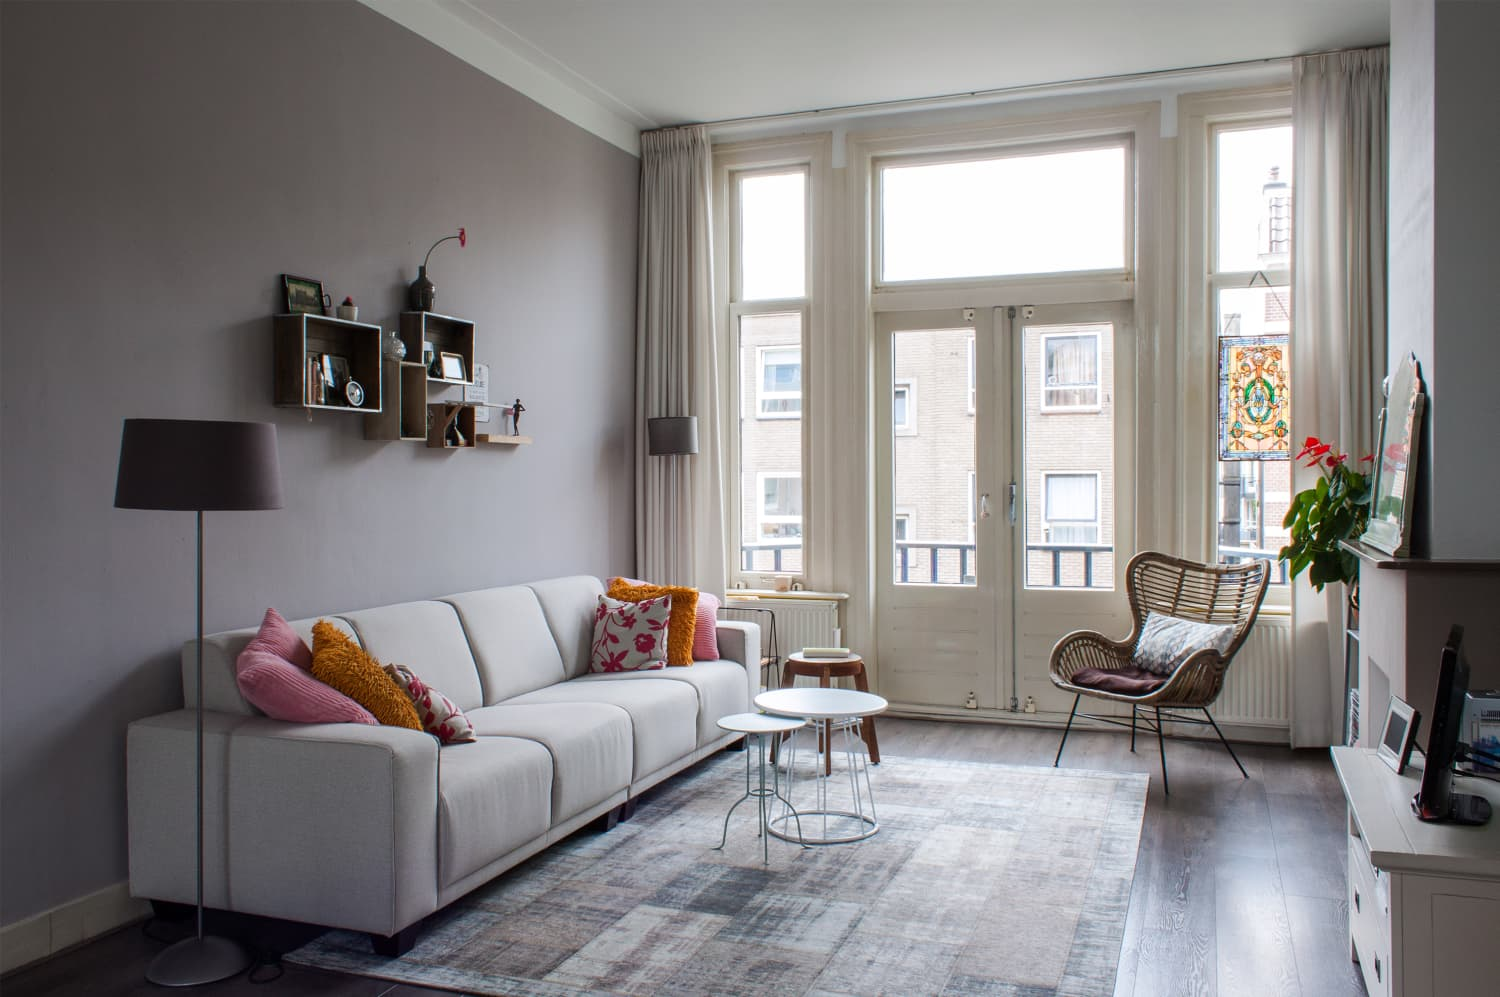 The 24 Most Brilliant Living Room Staging Tips of All Time